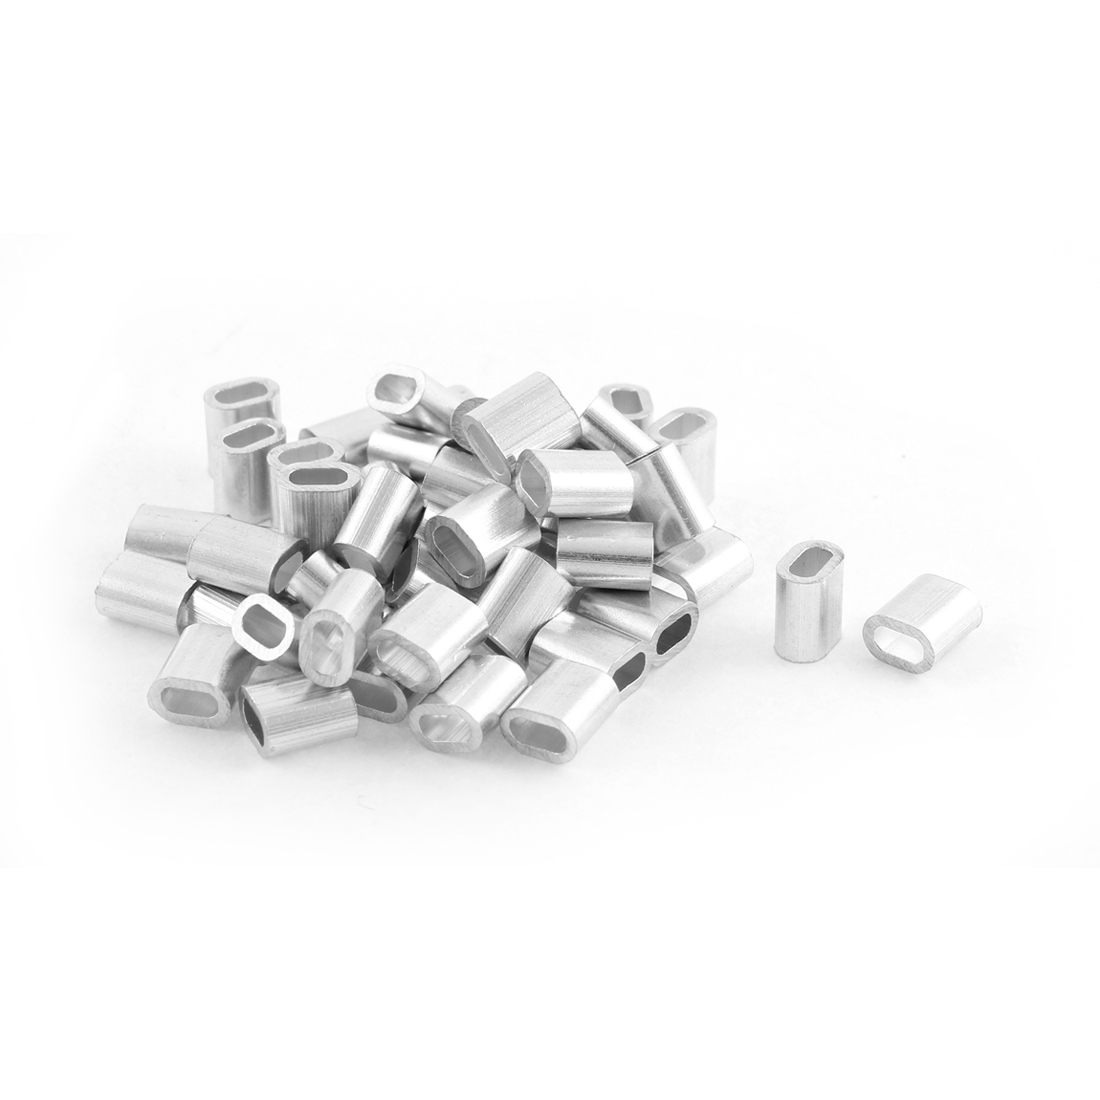 50pcs Oval Aluminum Sleeves Clamps for 2mm Wire Rope Swage Clip